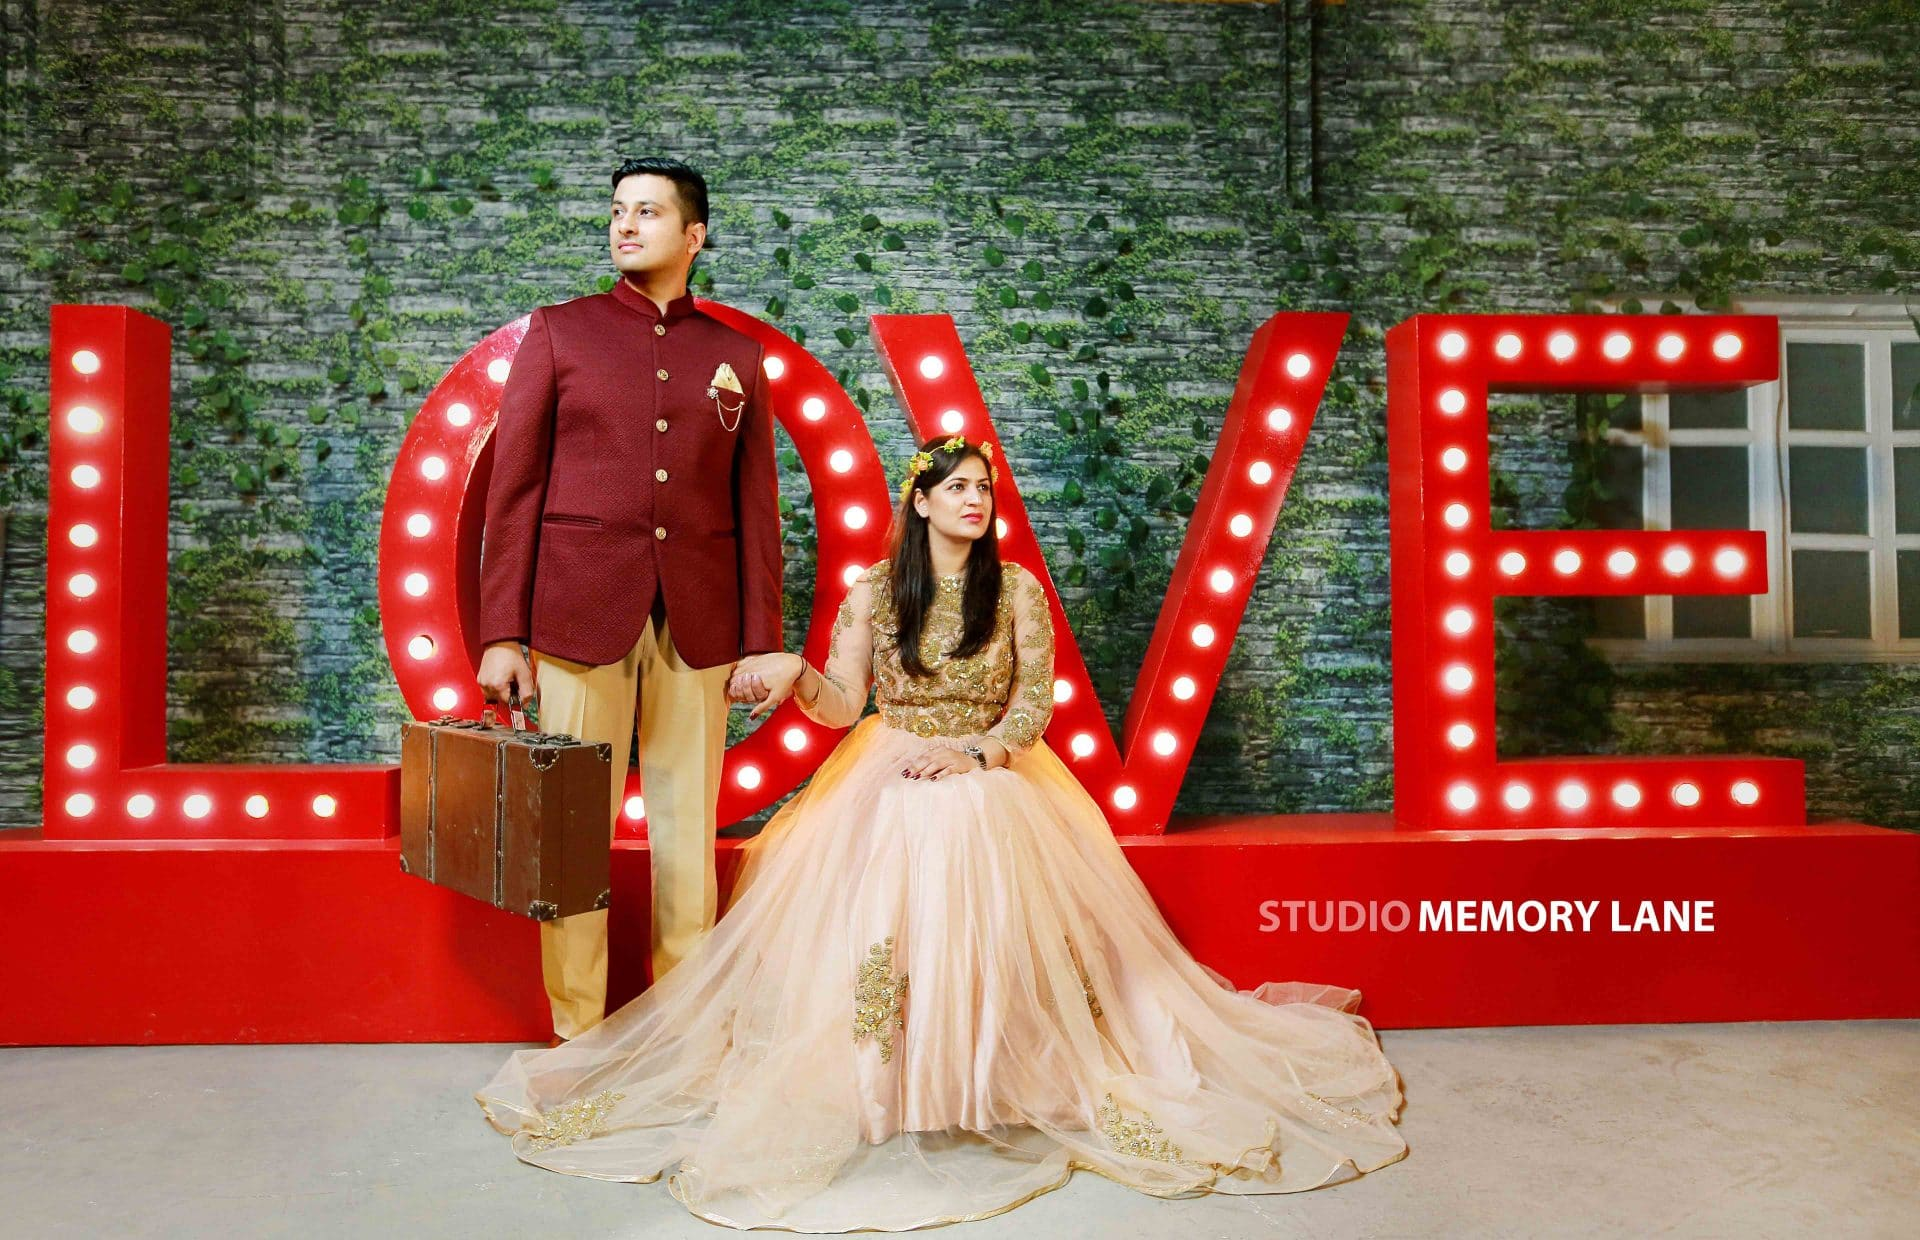 Chandigarh Pre-wedding Photographers | Loving the Moment!